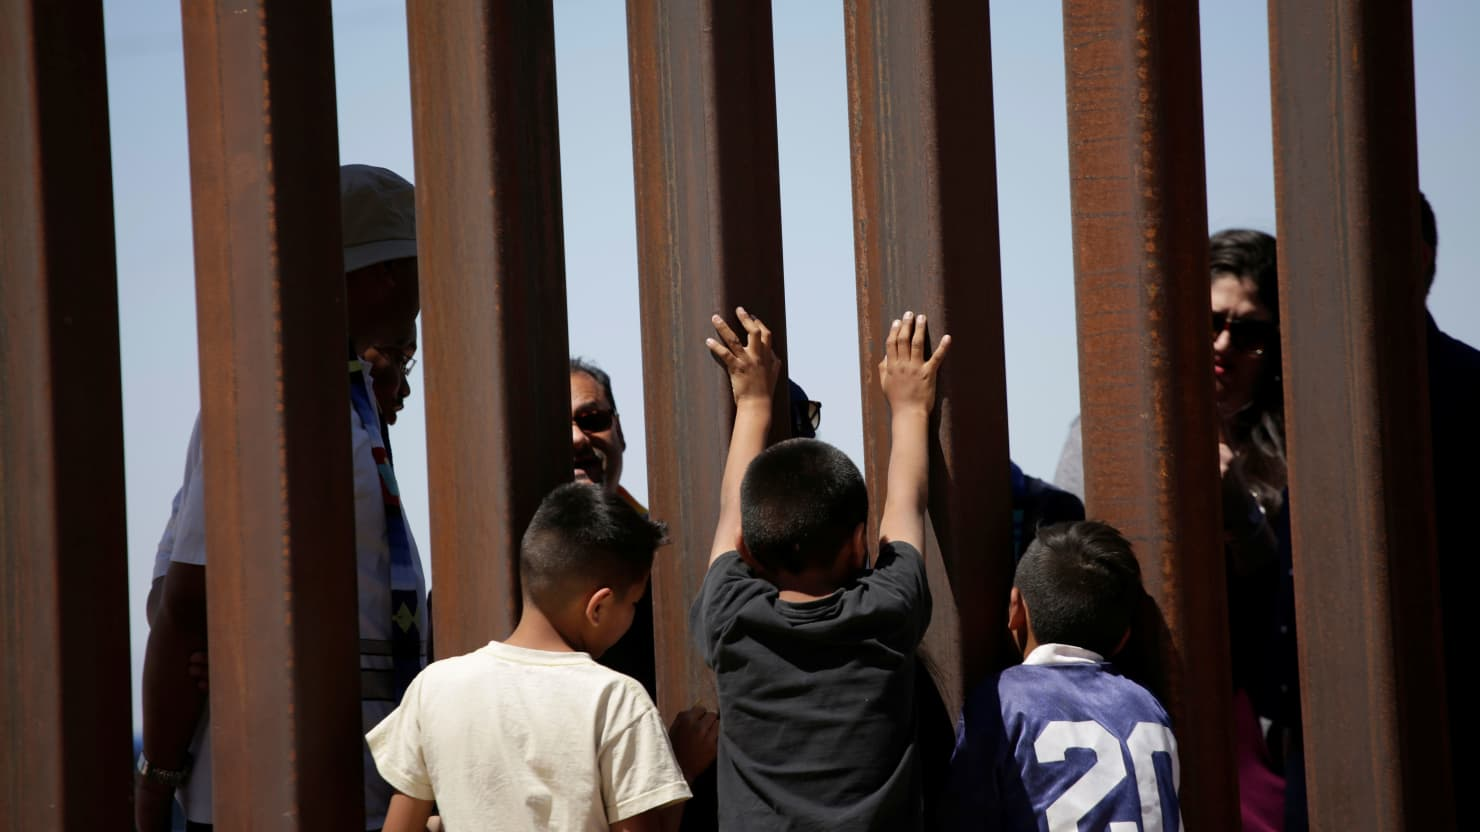 'Inhumane': Advocates Decry the Separation of Families at Border